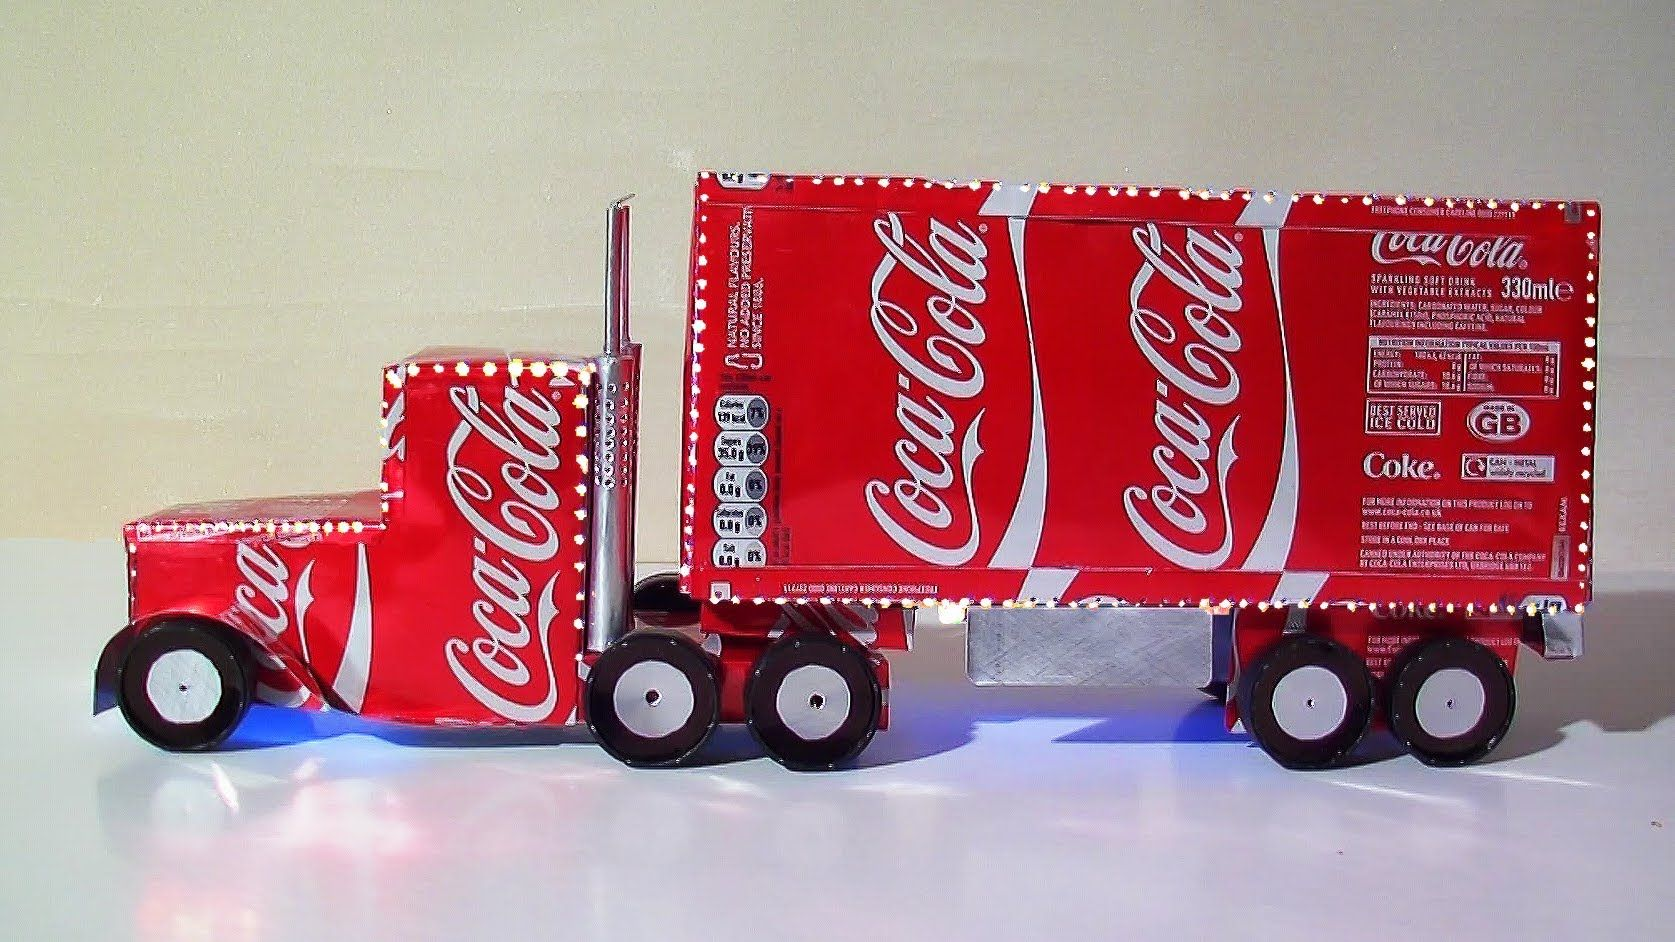 Paint schemes coca cola 600 free download image about all car type - Download Plans Here Http Www Davehax Com Cocacolatruck